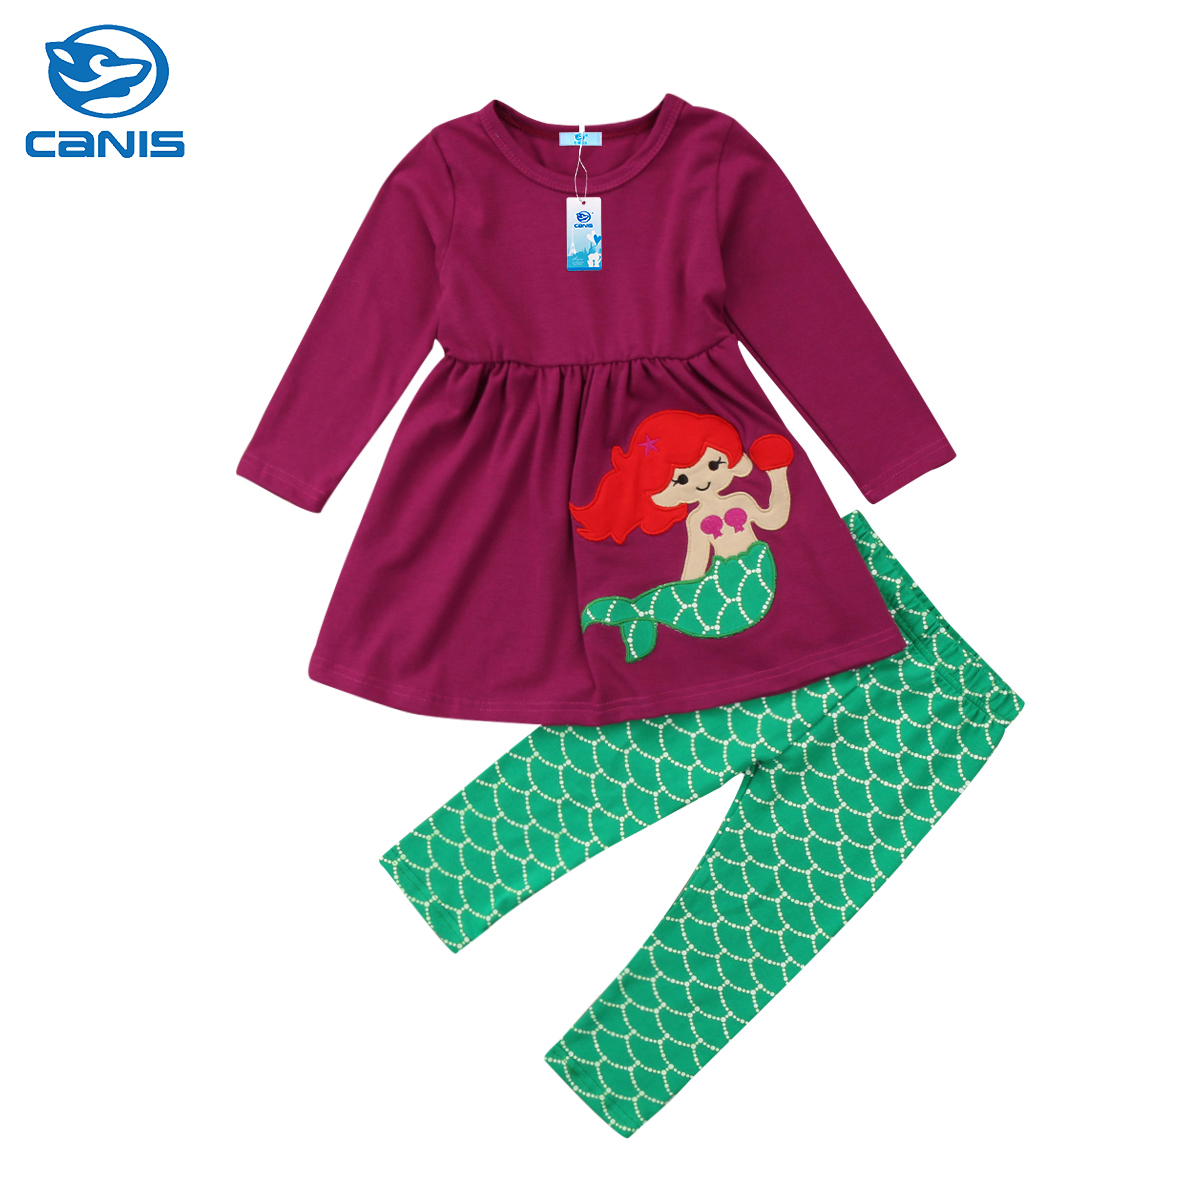 2018 Brand New 2pcs Toddler Infant Child Kid Girls Long Sleeve T-shirt Tops Long Pants Outfits Clothes 2Pcs Mermaid Set 1-6T 2pcs set autumn cartoon rabbit toddler baby kid girls long sleeve suit t shirt tops pants costume tracksuit outfits 1 5t